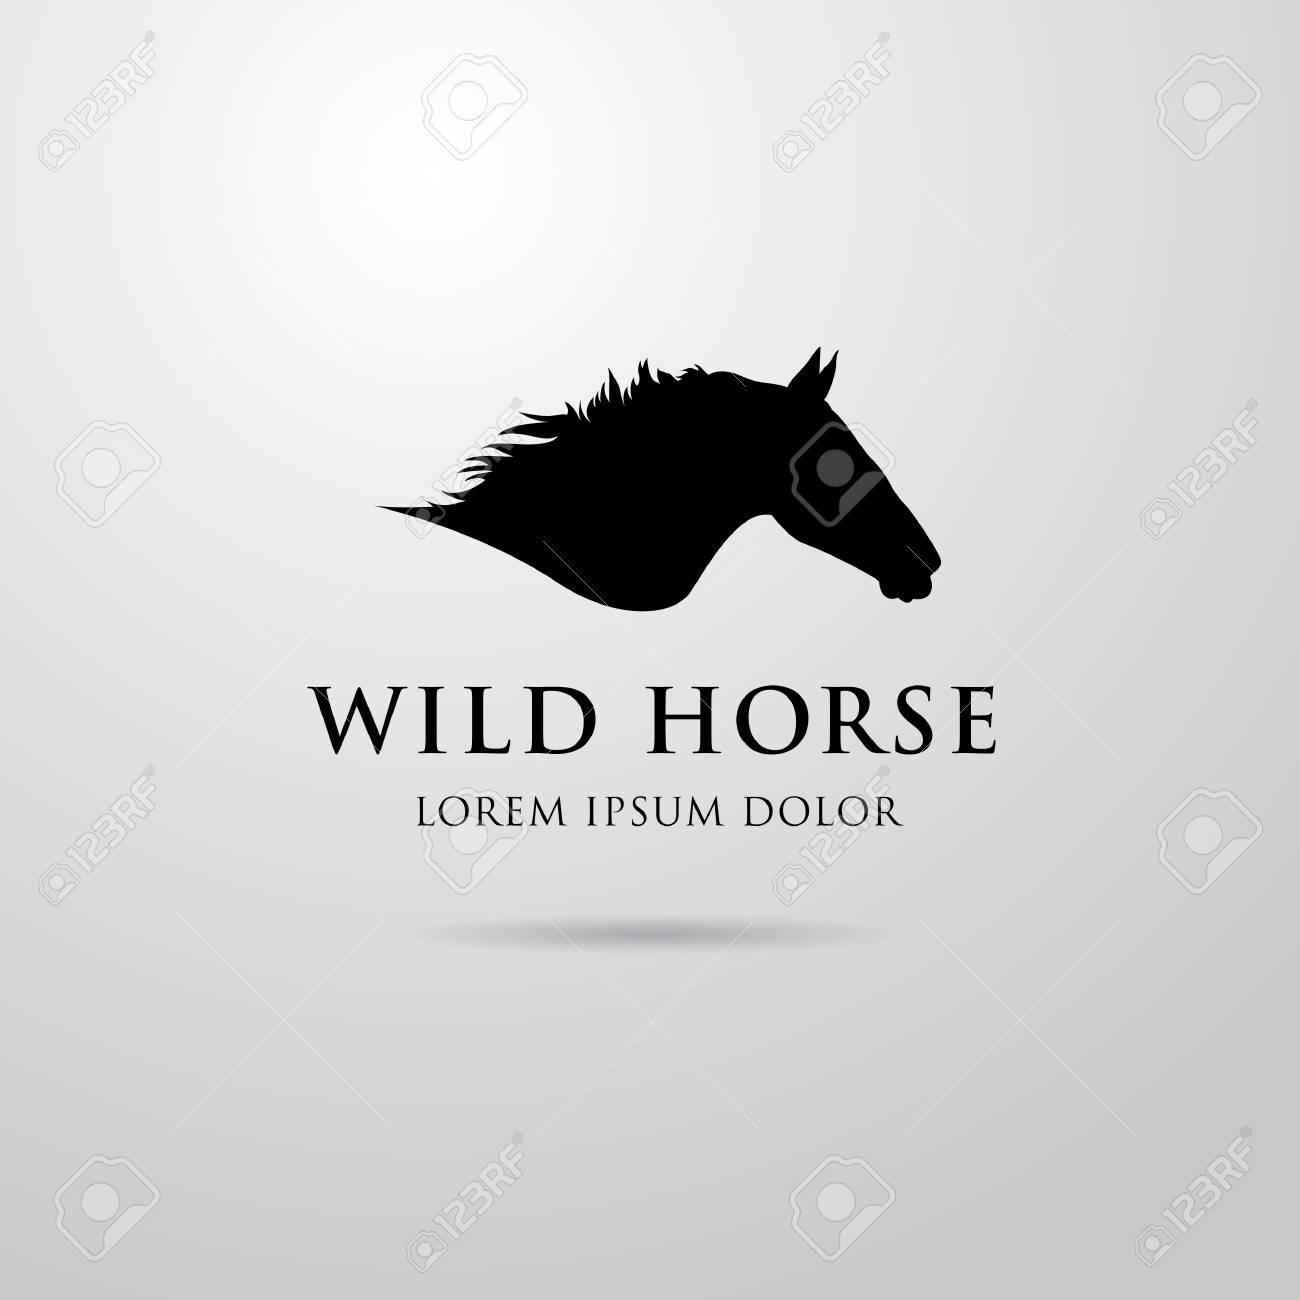 Horse Logo Design Royalty Free Cliparts Vectors And Stock Illustration Image 56422986